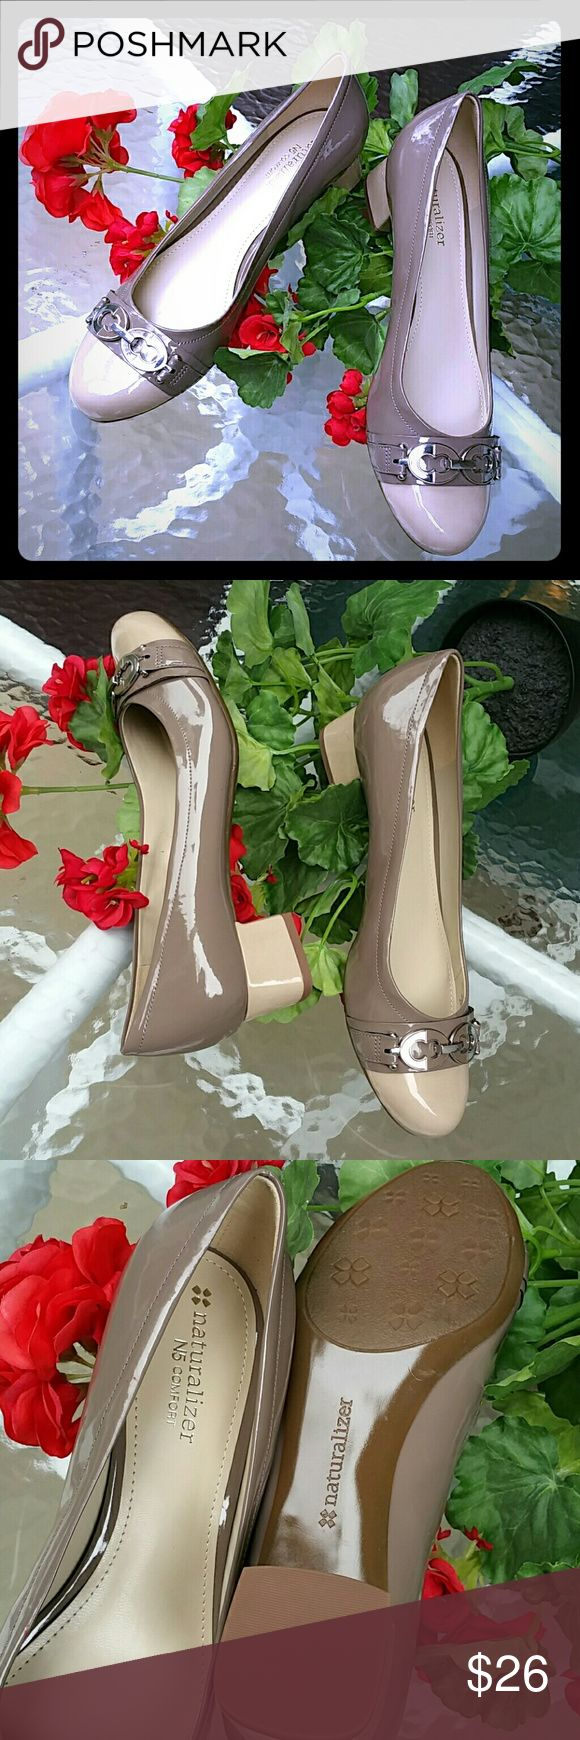 Cute Naturalizer shoes New 1.5 in heels Naturalizer Shoes